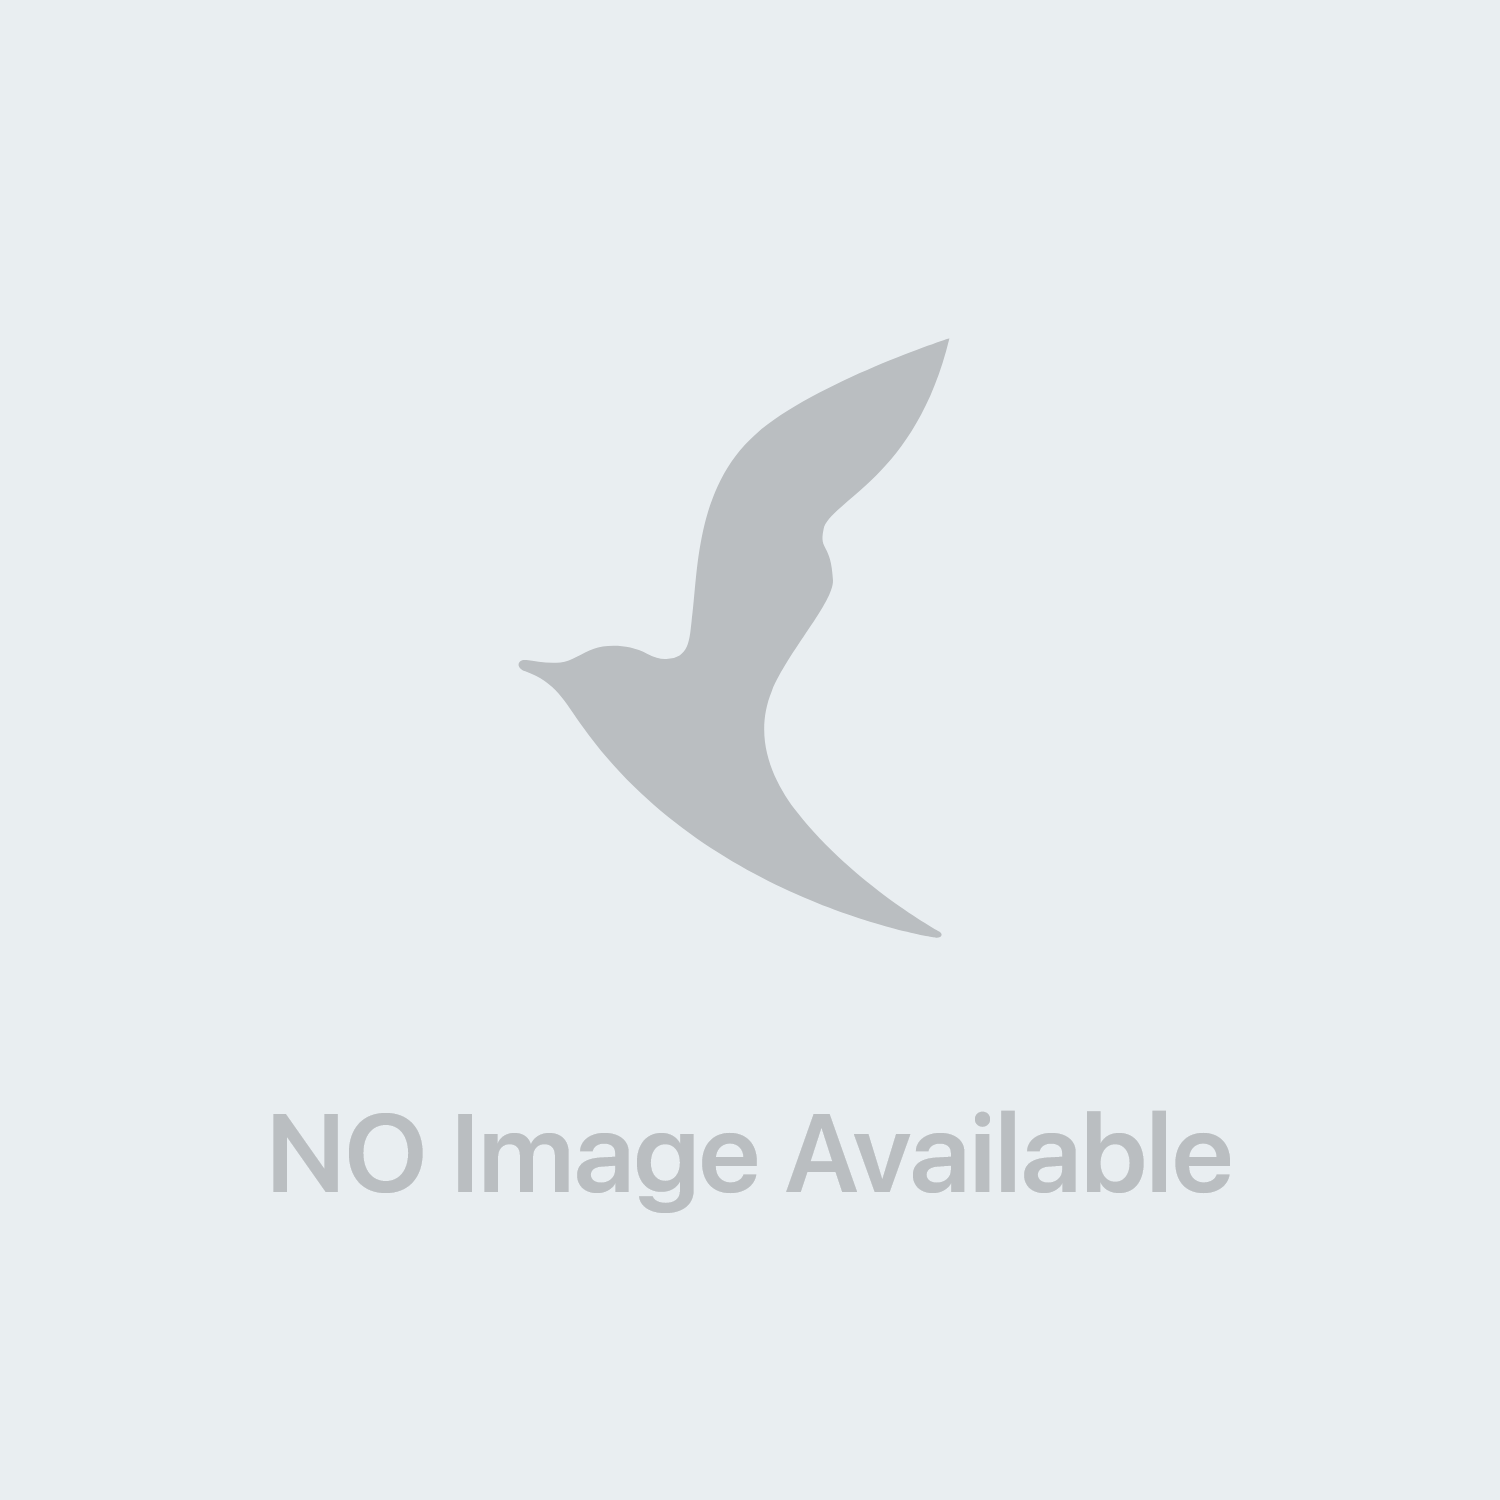 Momendol 12 Compresse Rivestite 220 mg